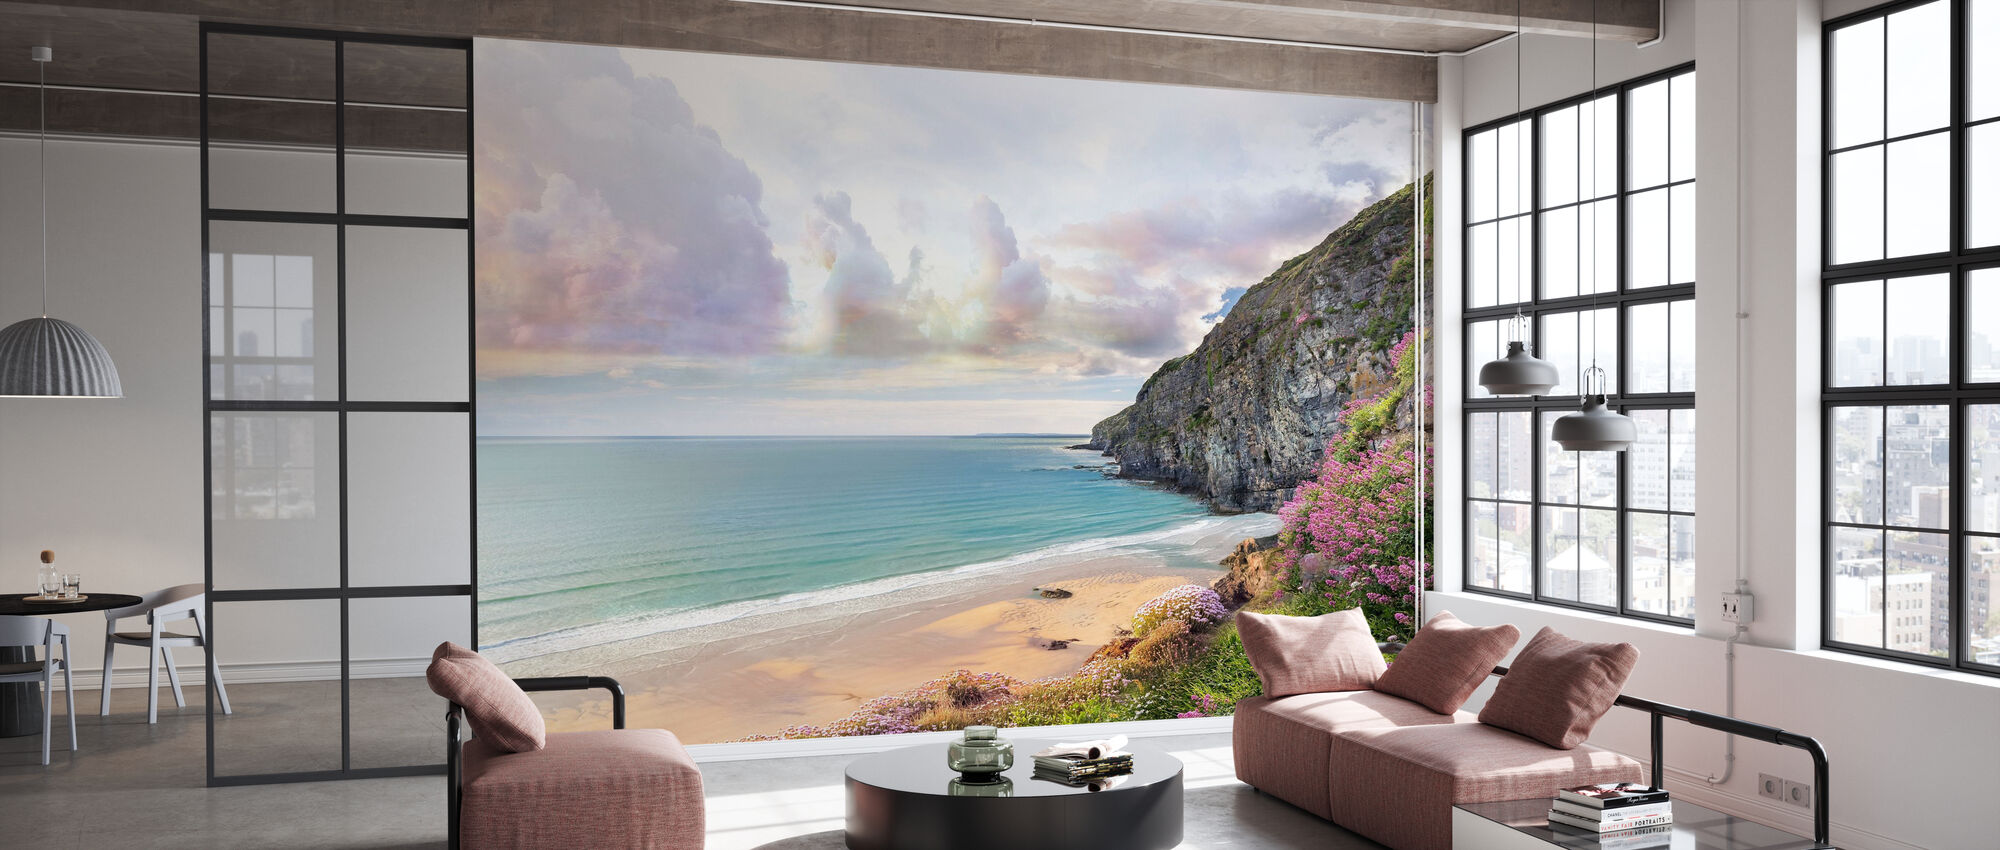 Beautiful Beach Shore - Wallpaper - Office